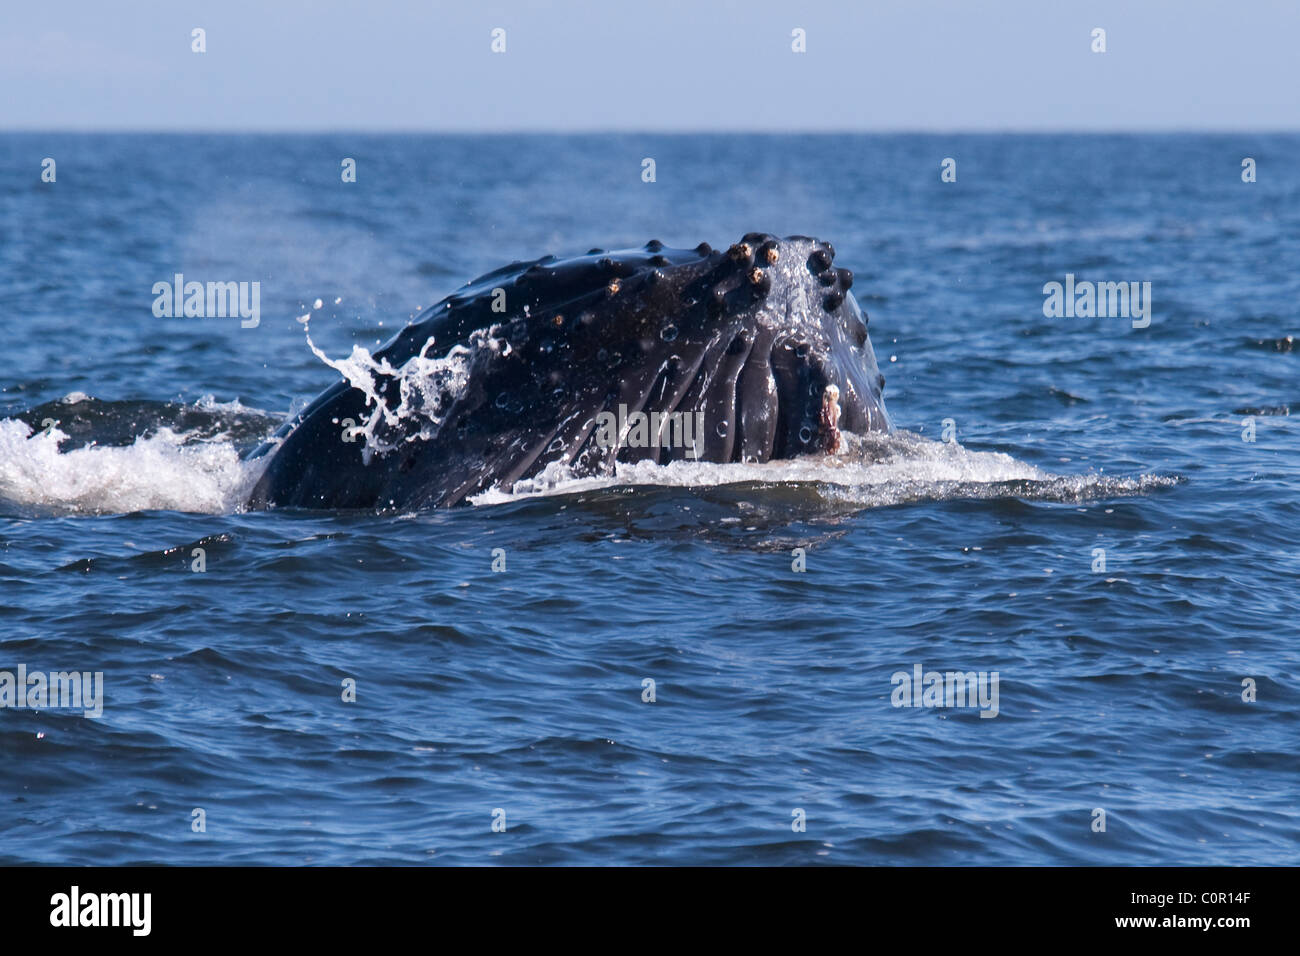 Humpback Whale (Megaptera novaeangliae) adult Whale lunge-feeding on Krill. Monterey, California, Pacific Ocean. - Stock Image